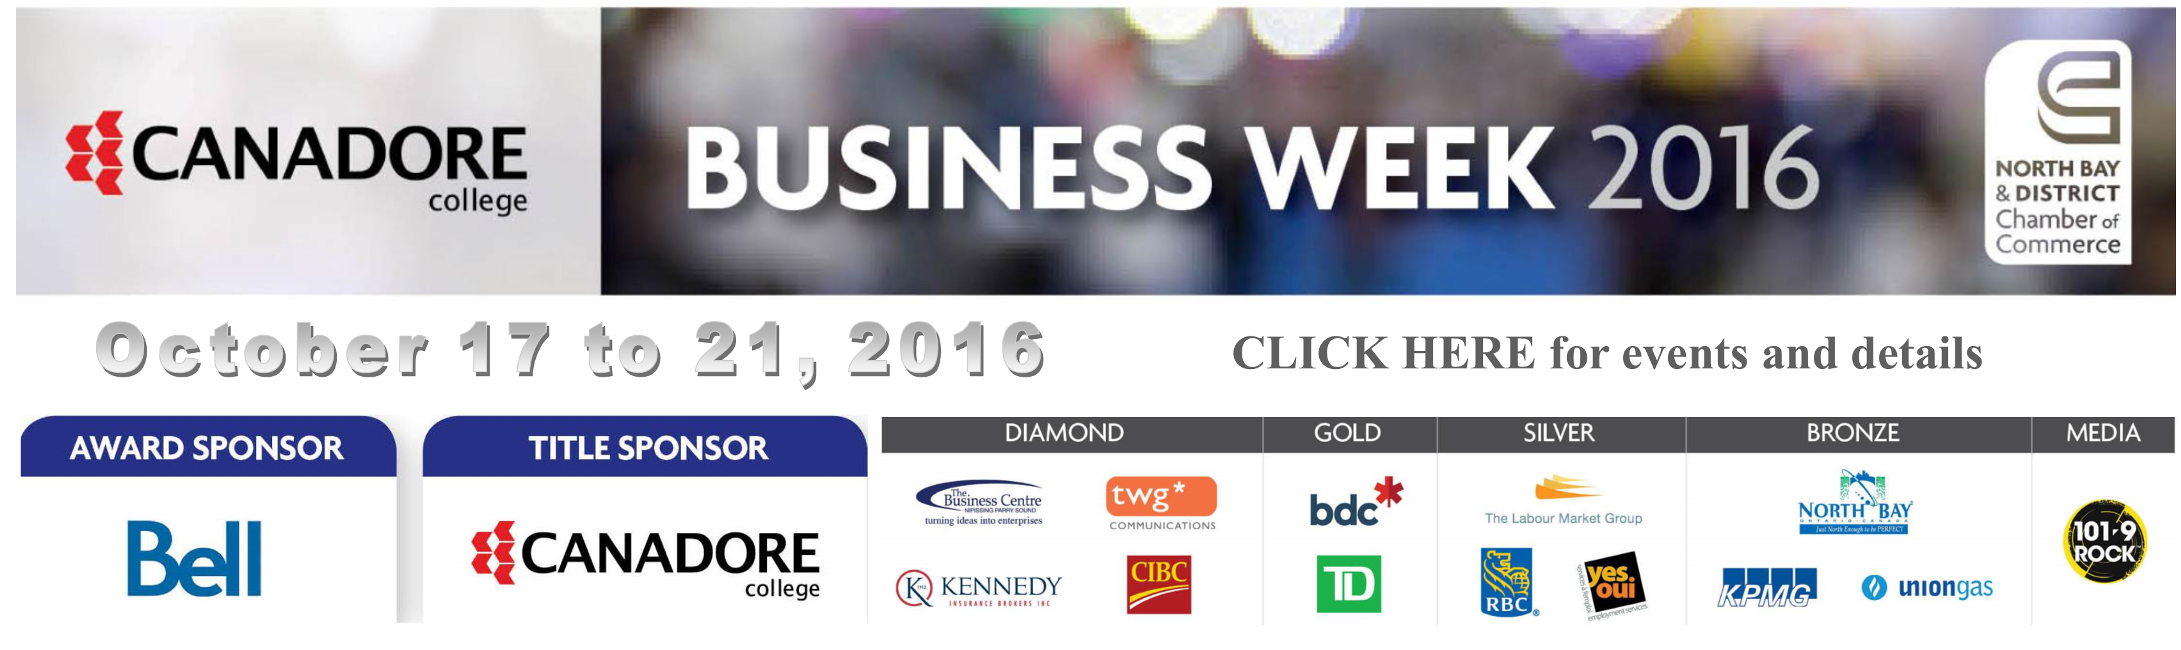 header-for-business-week-2016